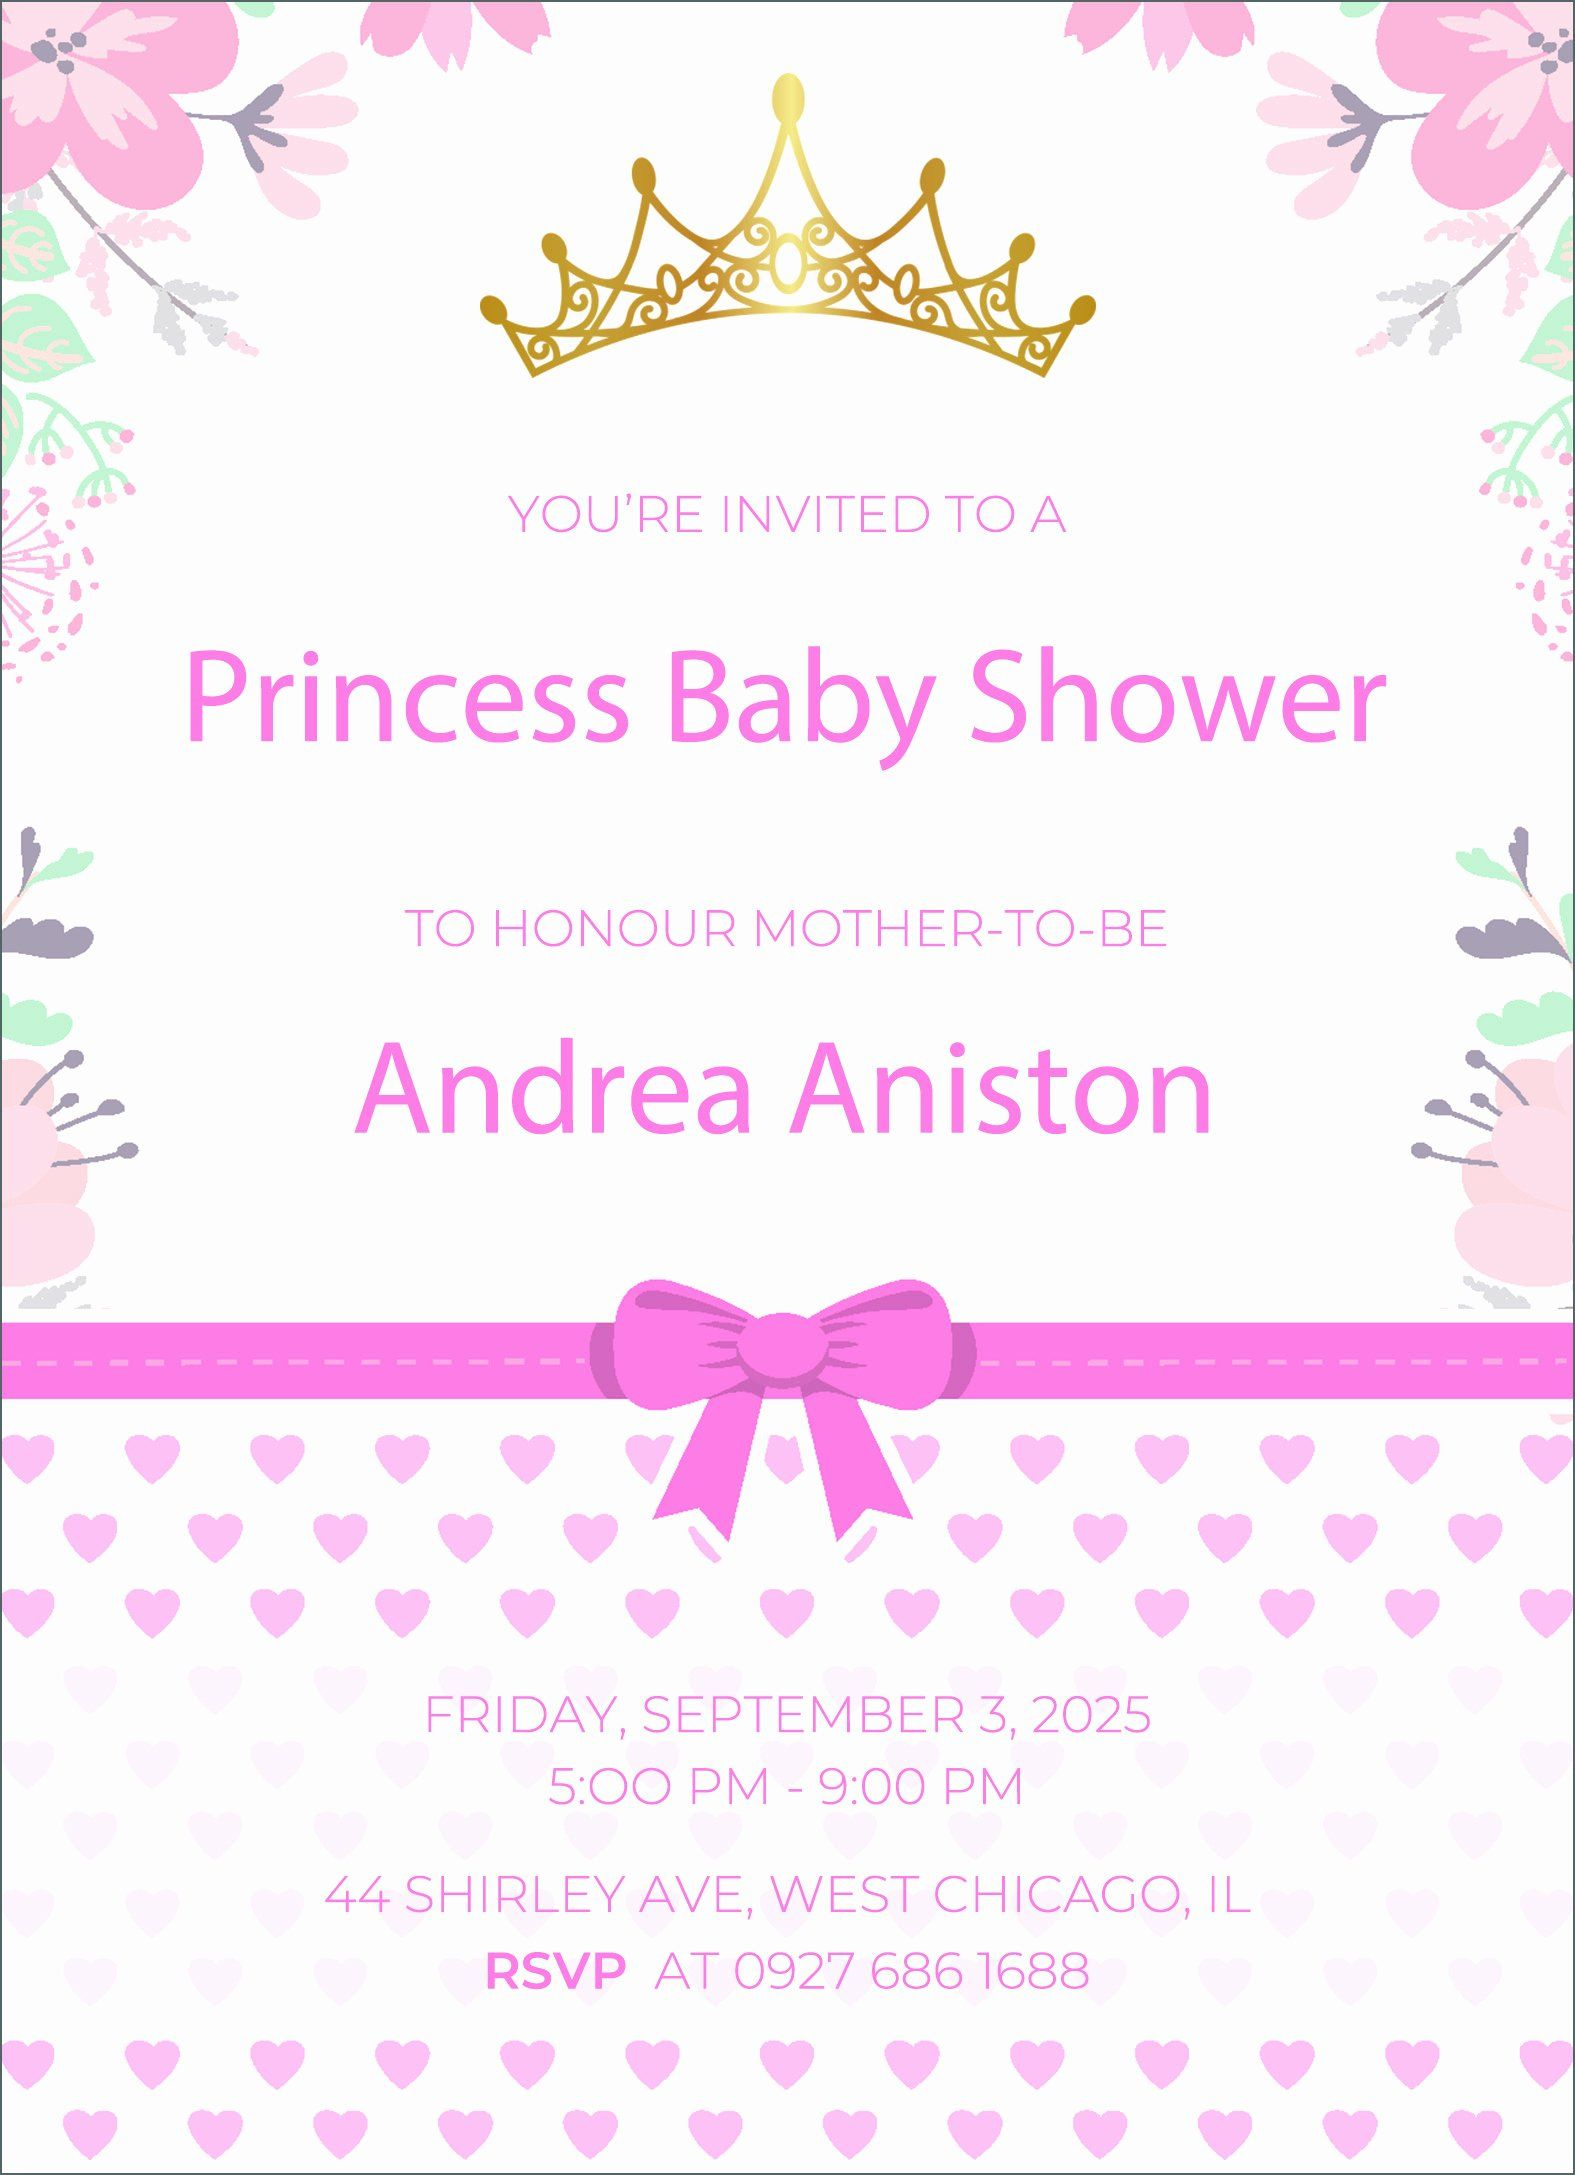 Princess Theme Baby Shower Invitations Fresh 24 Free Editable Baby S Baby Shower Invitation Cards Free Baby Shower Invitations Baby Shower Invitation Templates